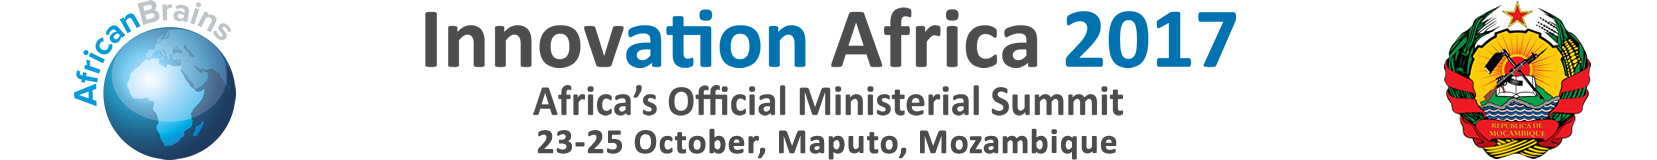 Africa's Official Ministerial Summit - October 2017, Maputo, Mozambique